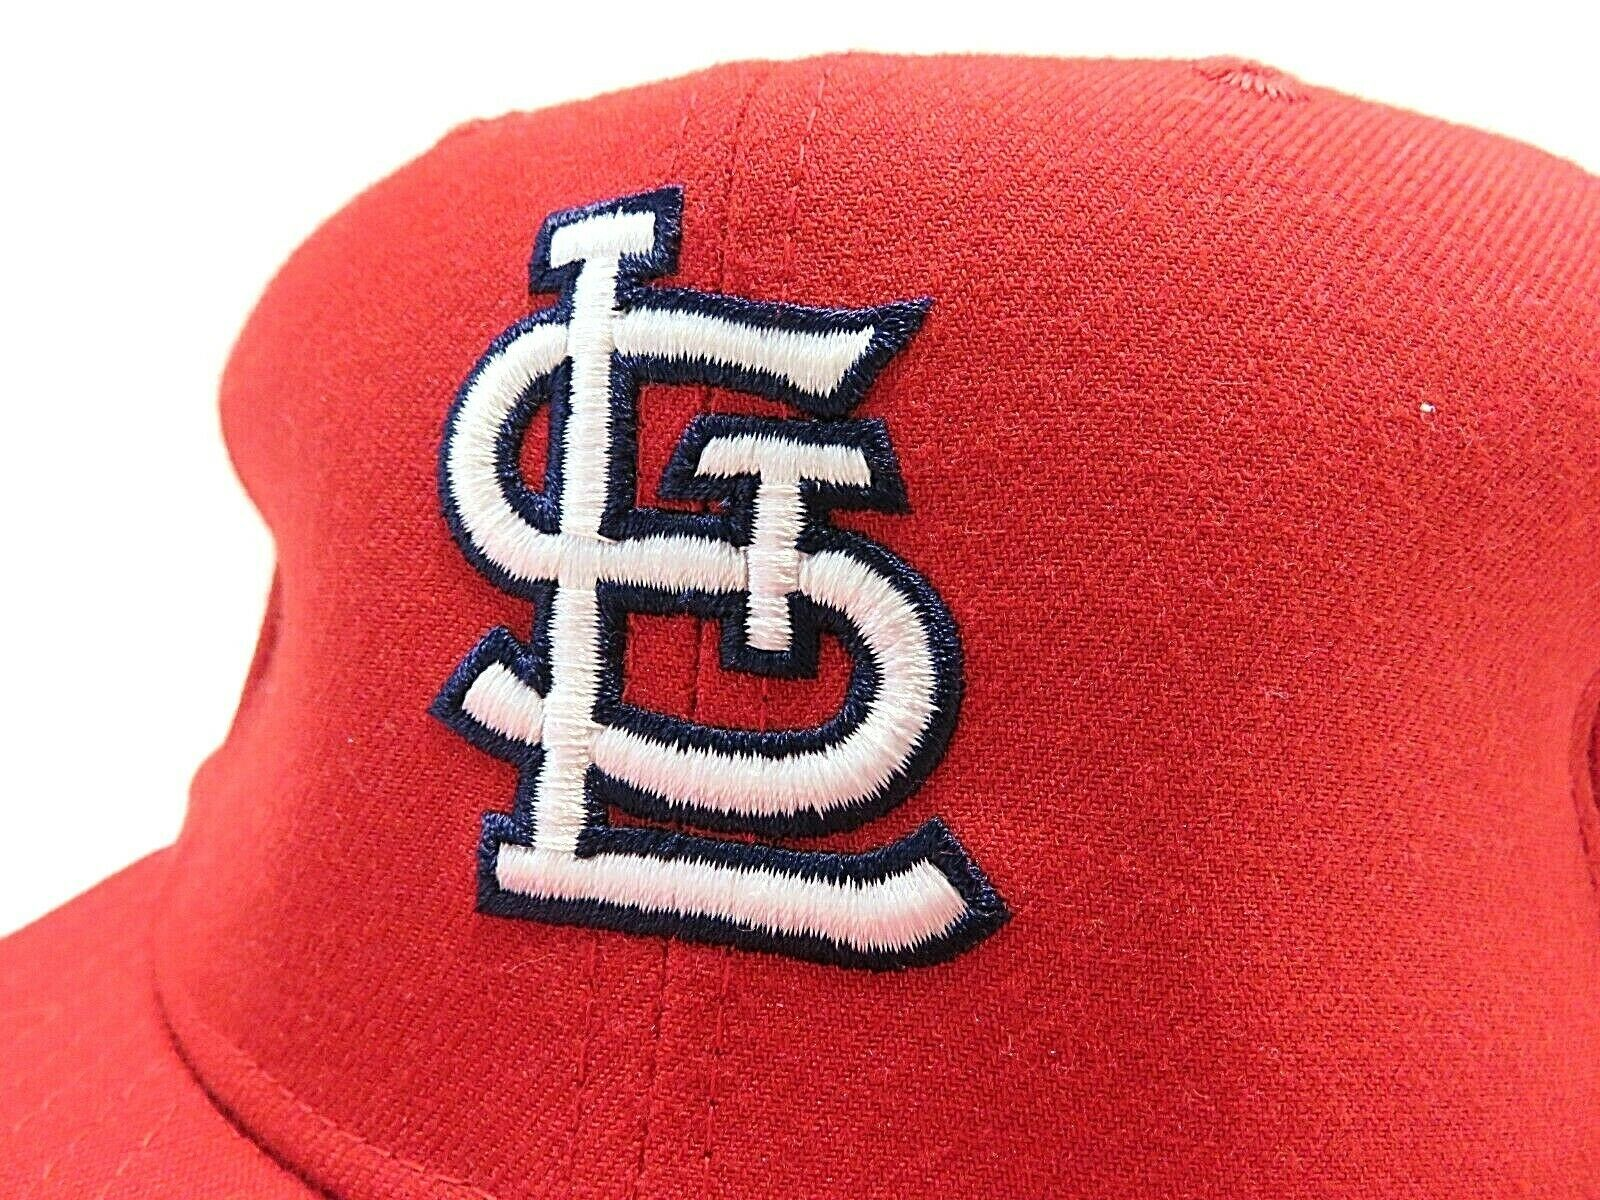 VTG New Era St.Louis Cardinals MLB Baseball Fitted Hat Adult Size 7 3/4 USA Made image 2